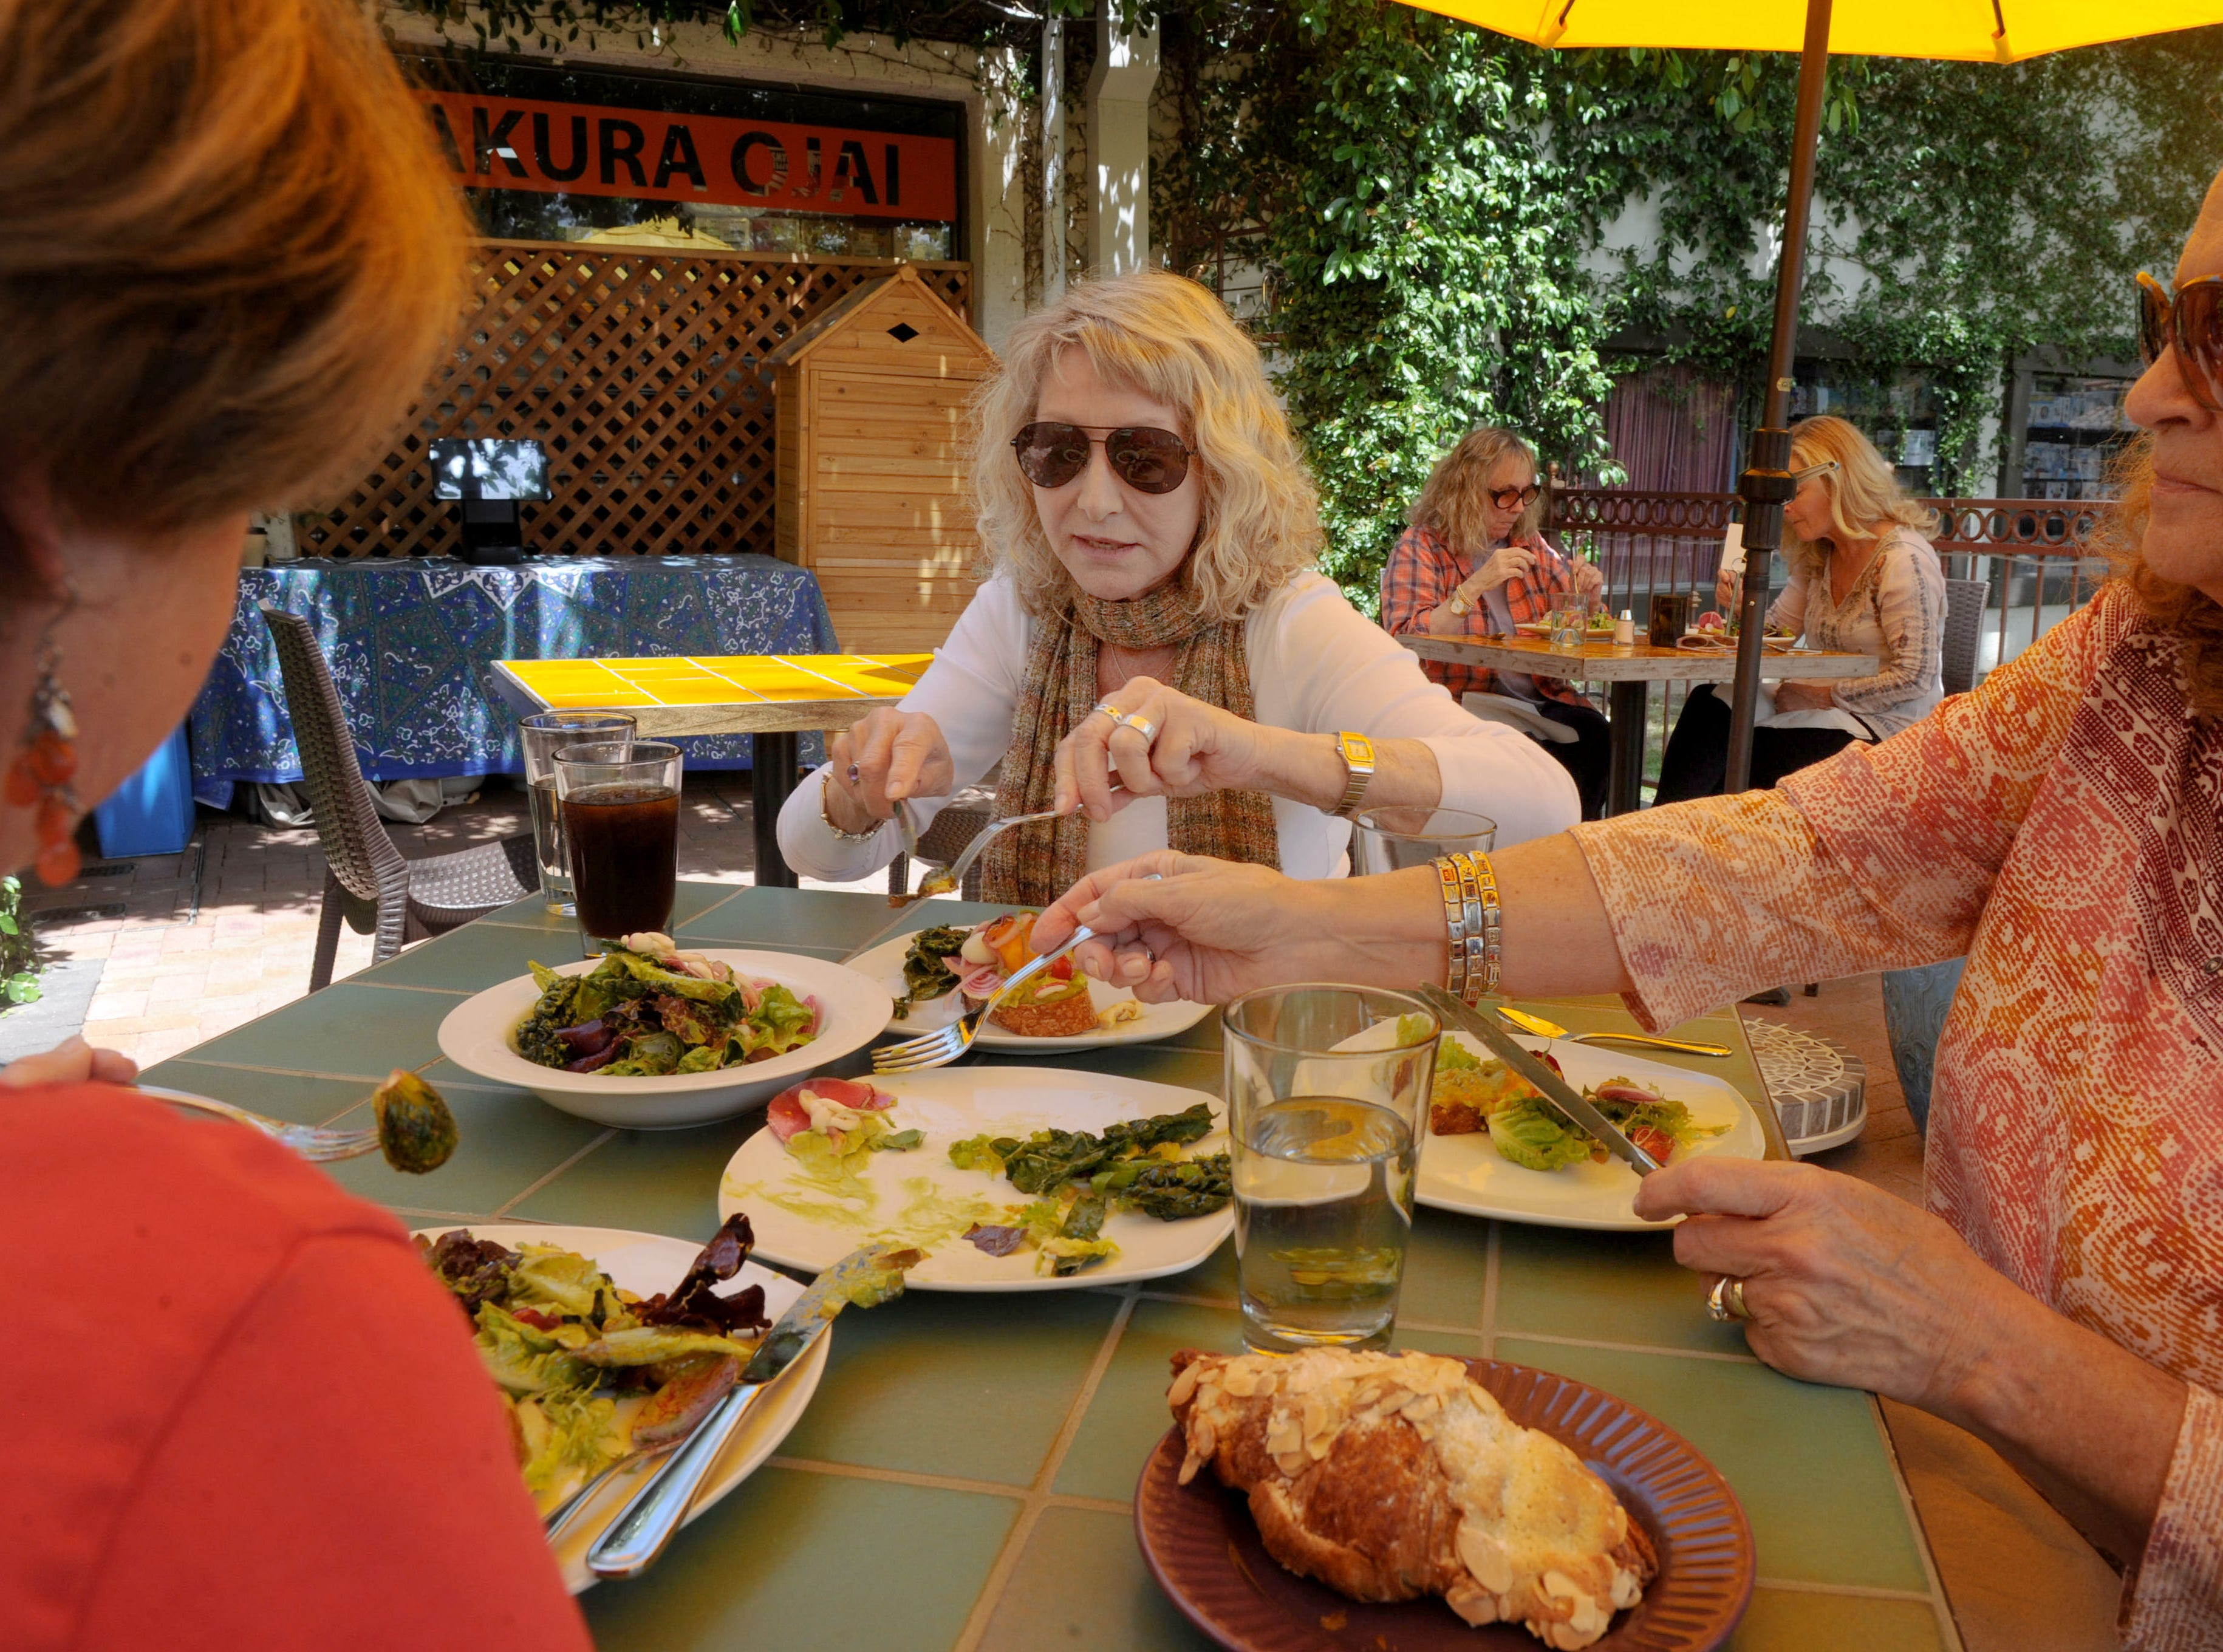 Sharon Markley, from left, Jacqueline Dorfman and Barbara Crowder enjoy sharing a couple of plates at Sage Mindful Meals and Elixirs in Ojai.